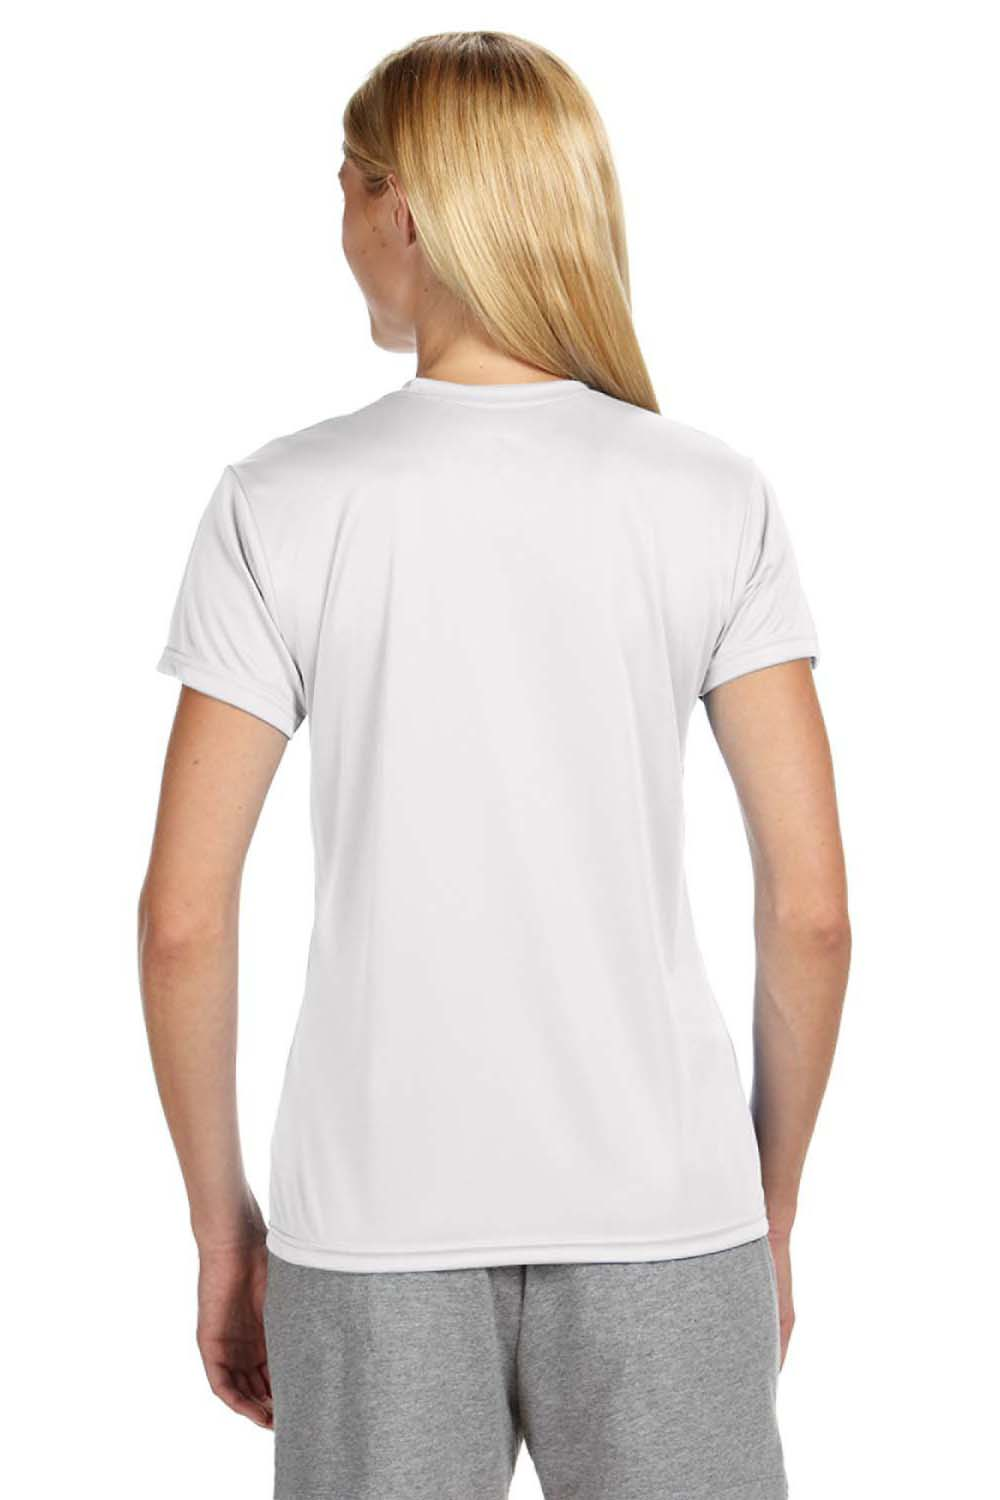 A4 NW3201 Womens Cooling Performance Moisture Wicking Short Sleeve Crewneck T-Shirt White Back